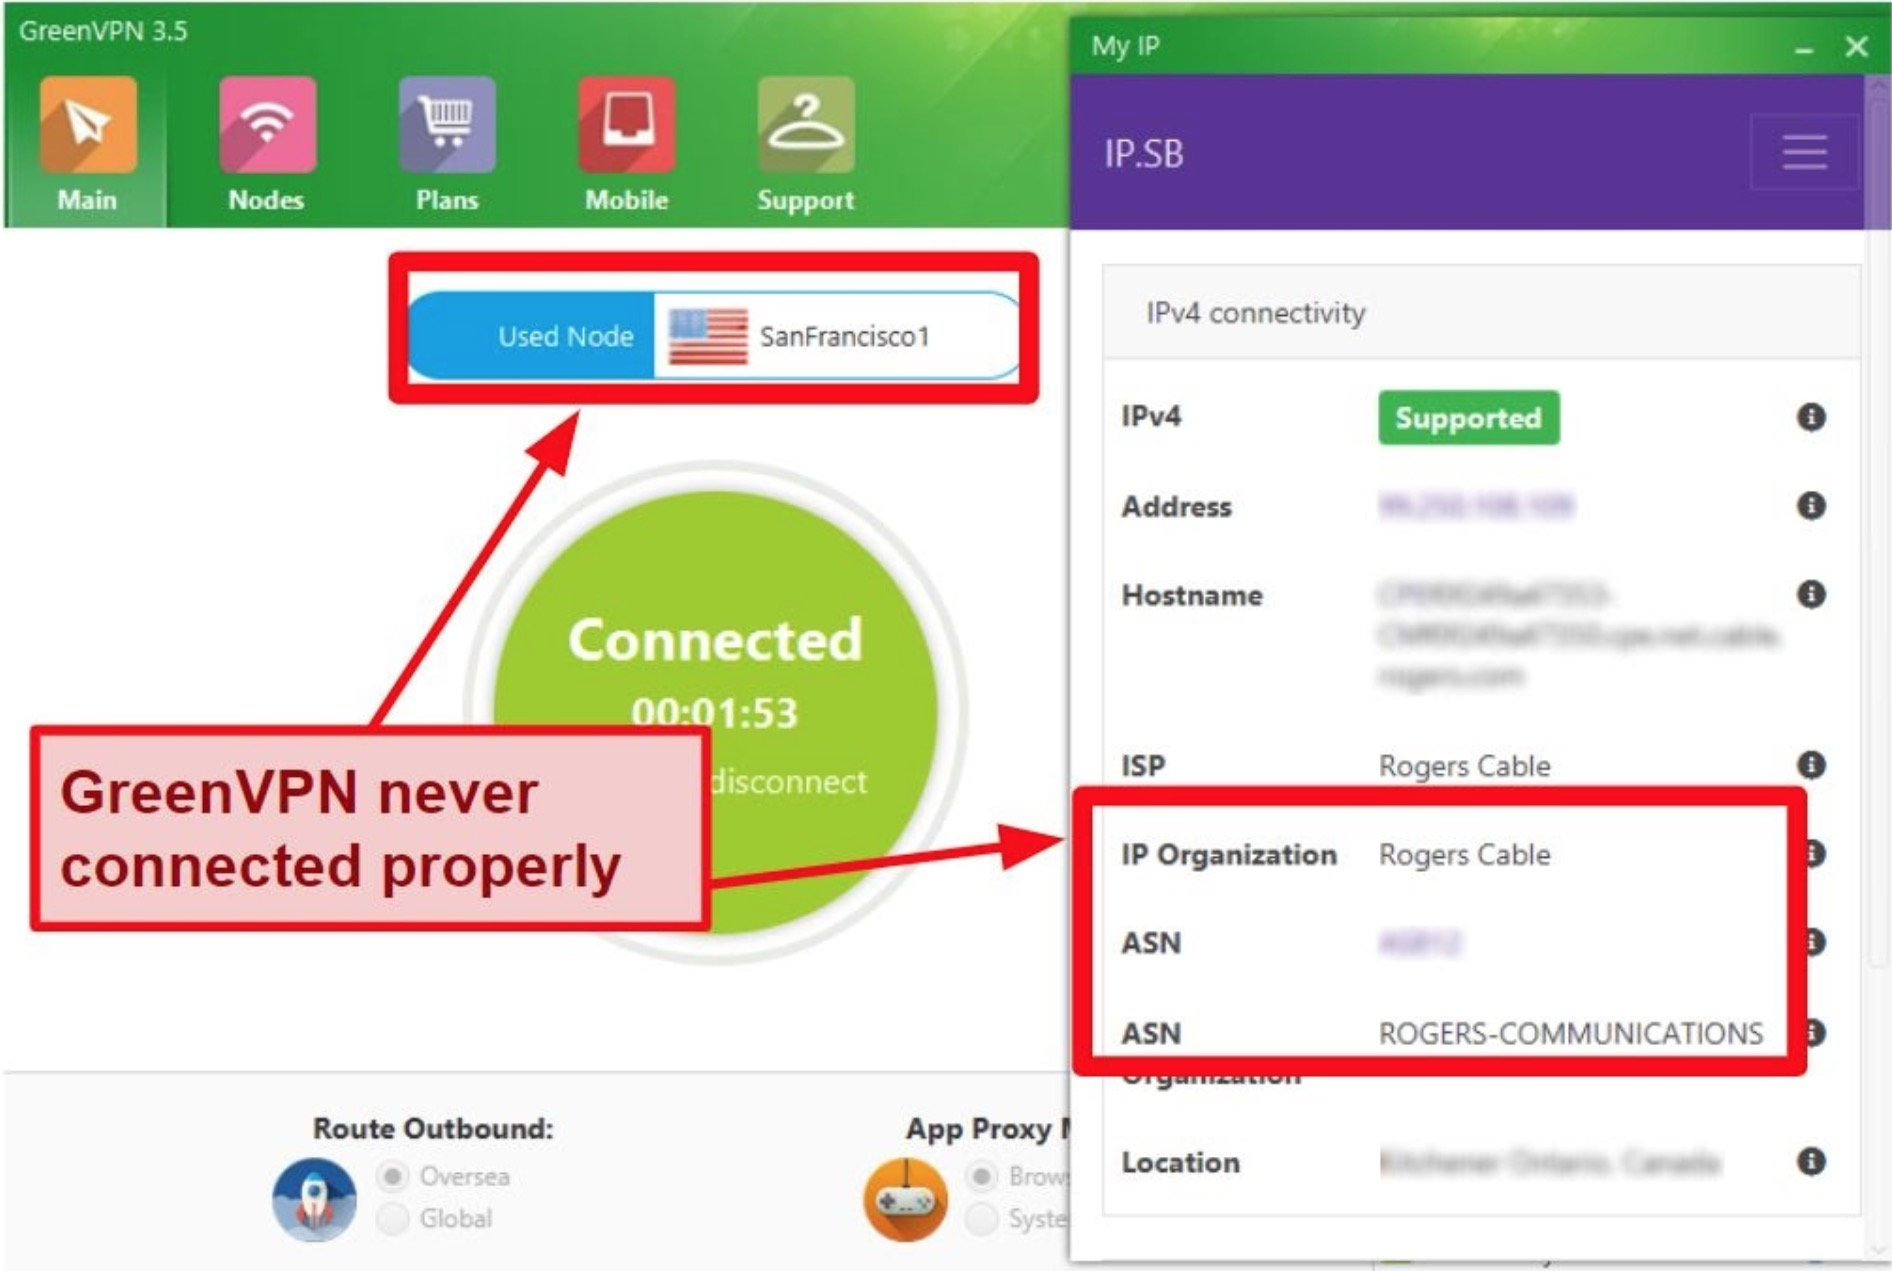 Screenshot of GreenVPN interface showing server connections and IP settings.